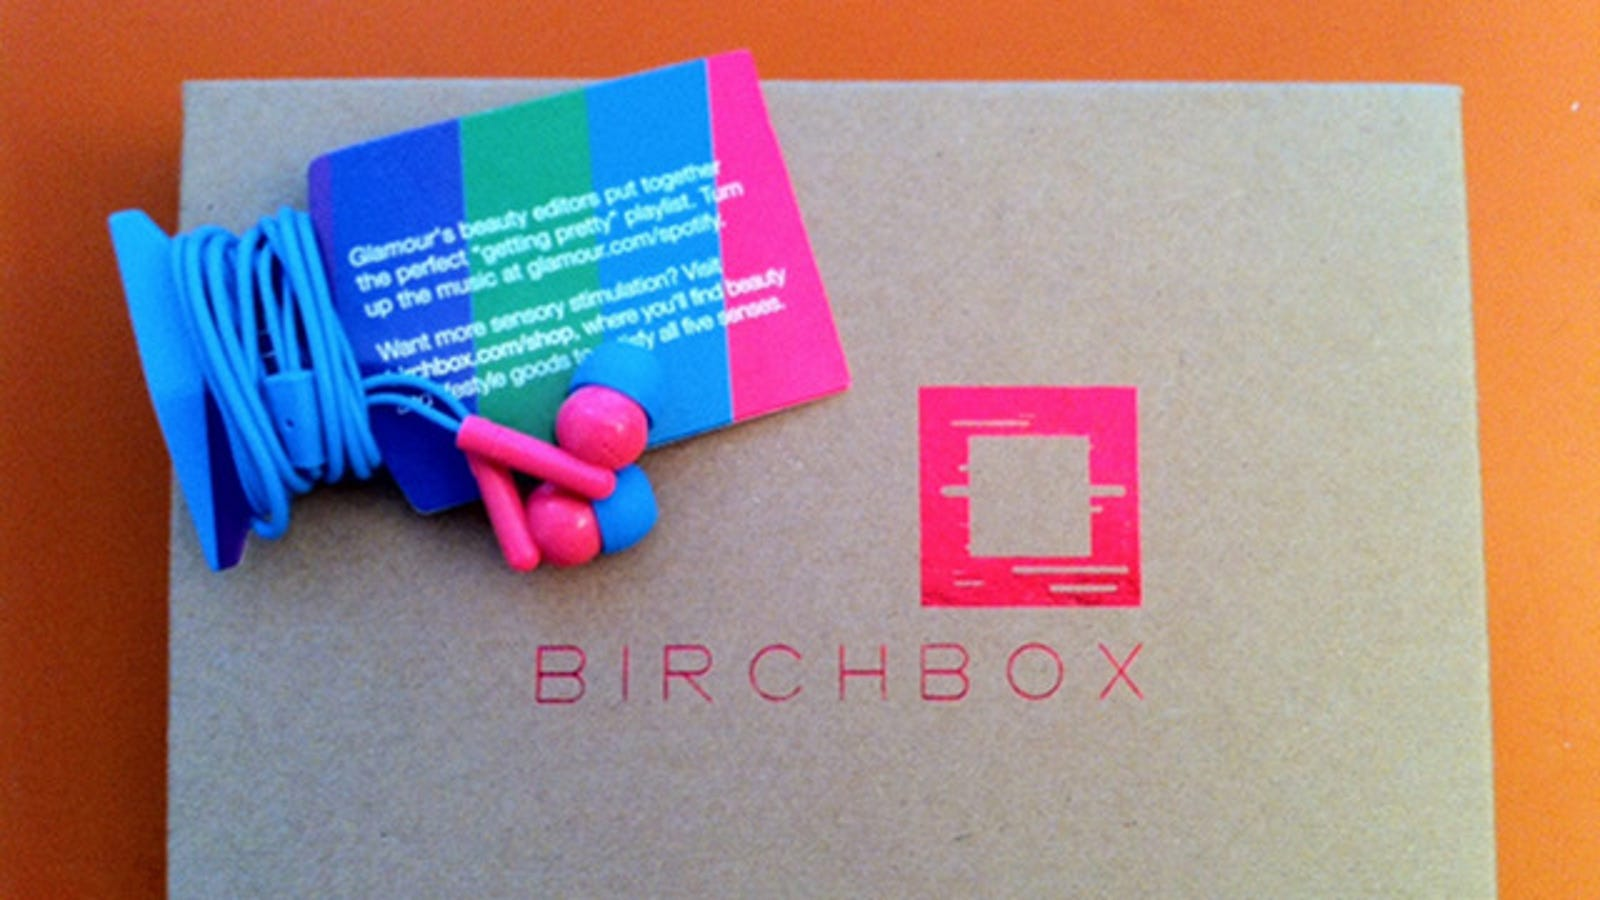 ear buds untrangless - Birchbox: At Least Those Crappy Earbuds Are Cute!